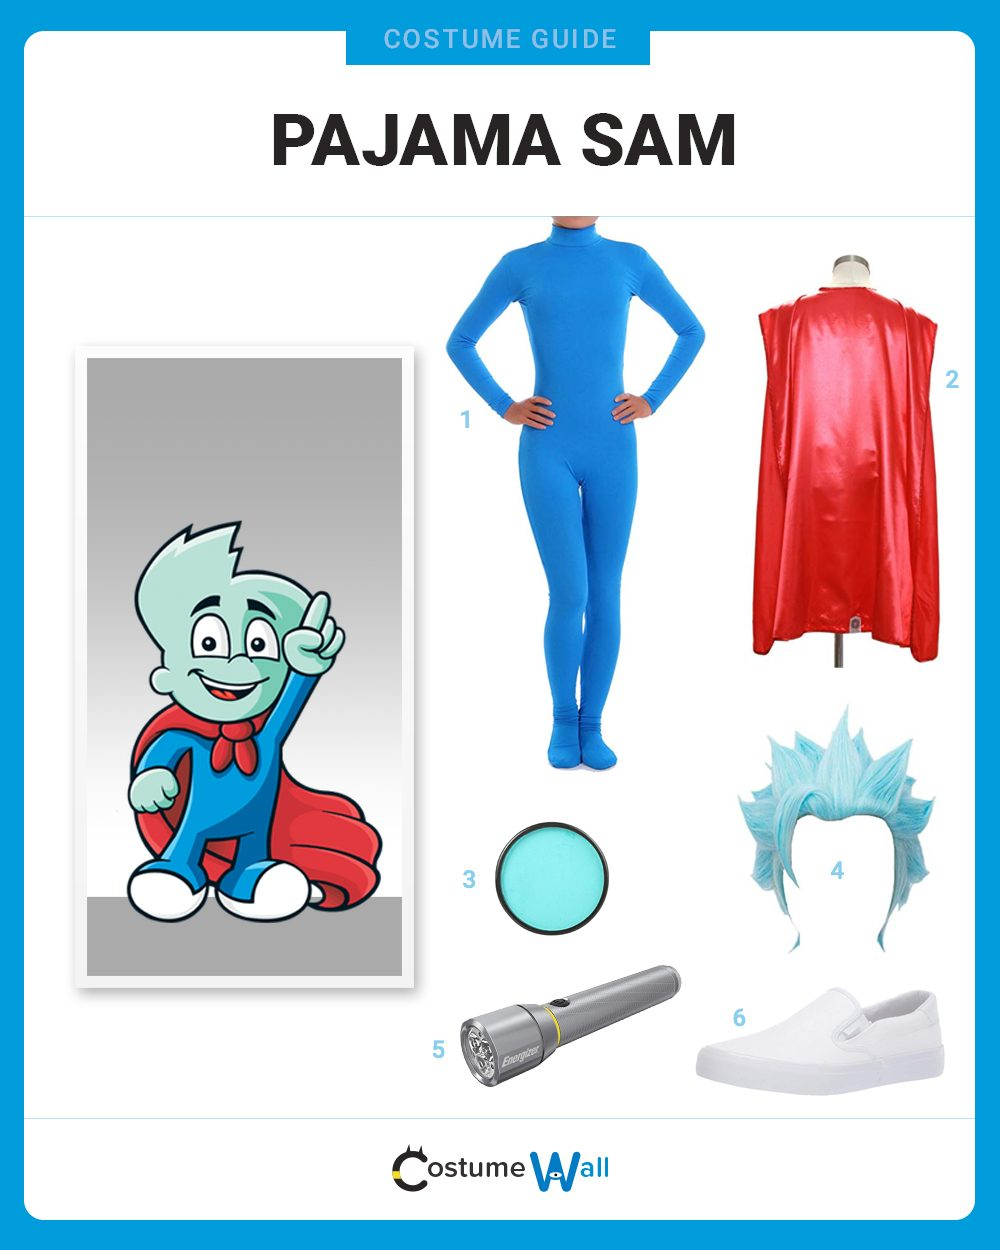 Pajama Sam Costume Guide